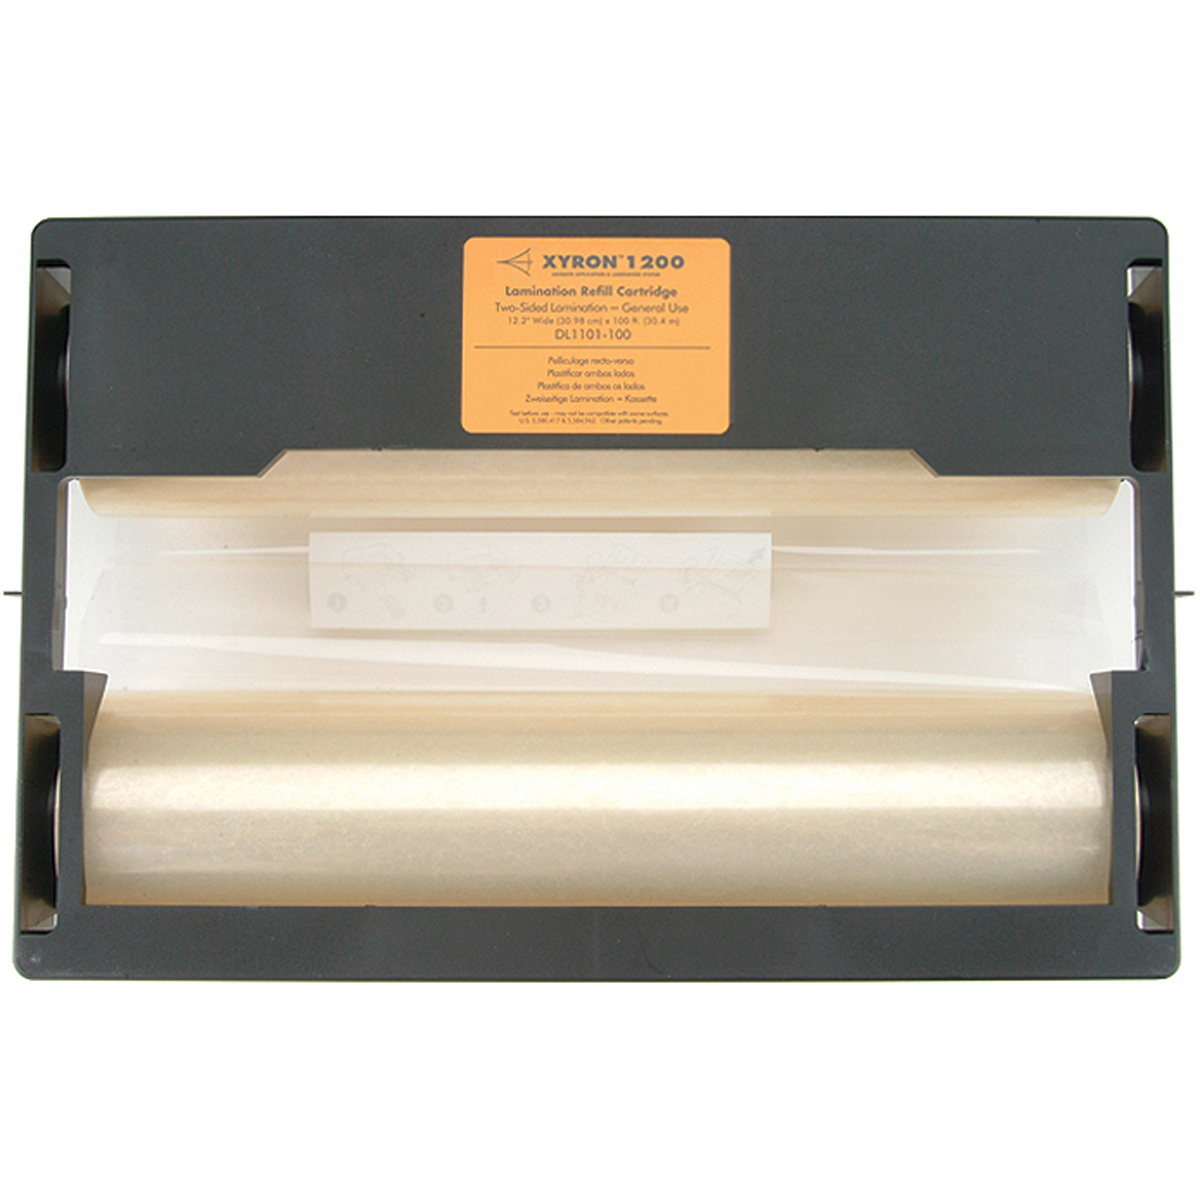 "Xyron 1200 Adhesive Refill Cartridge-12""X50' Permanent"